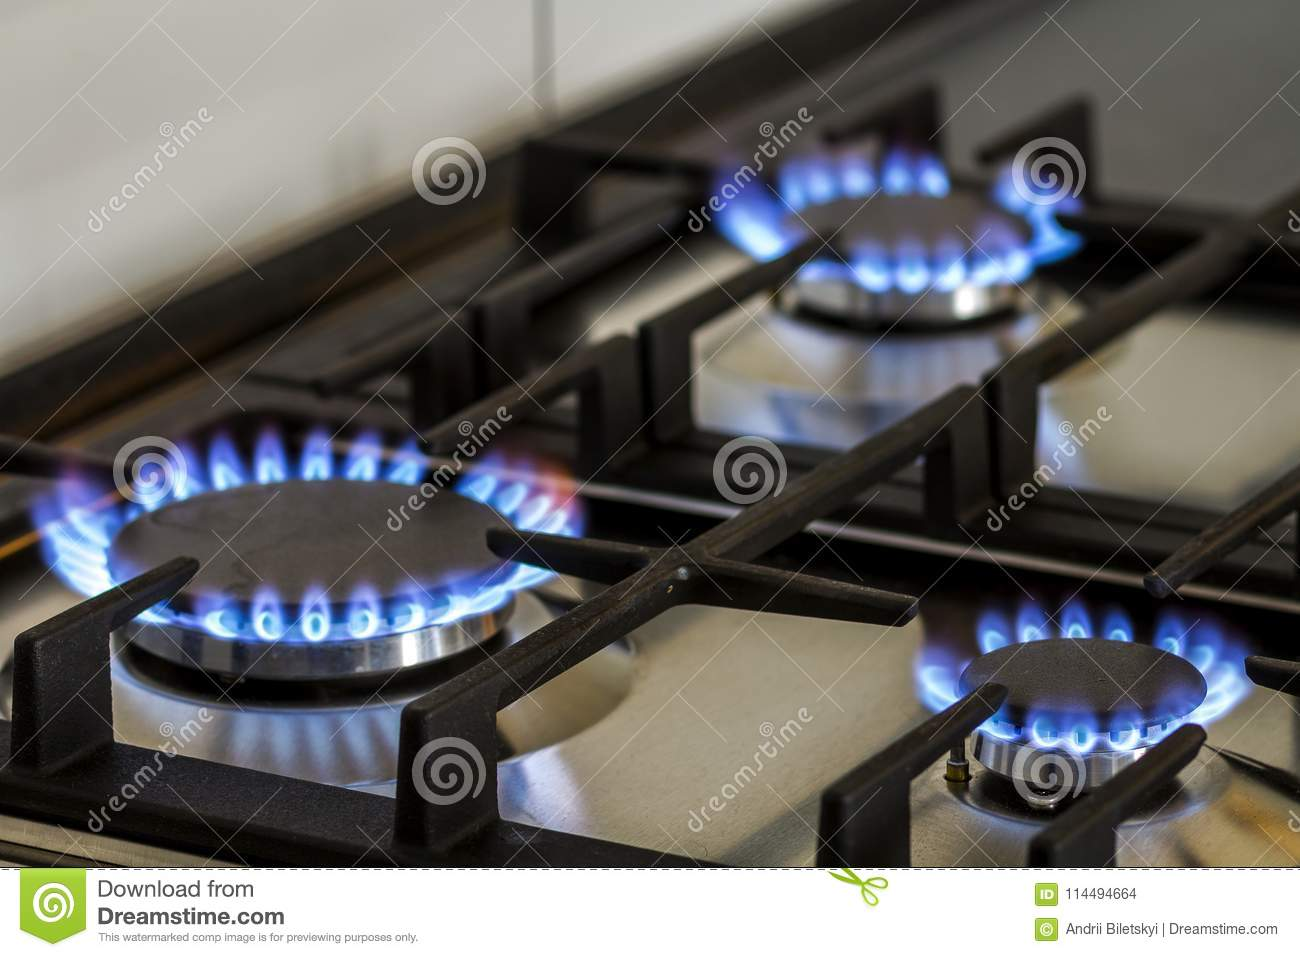 Natural gas burning on kitchen gas stove in the dark. Panel from